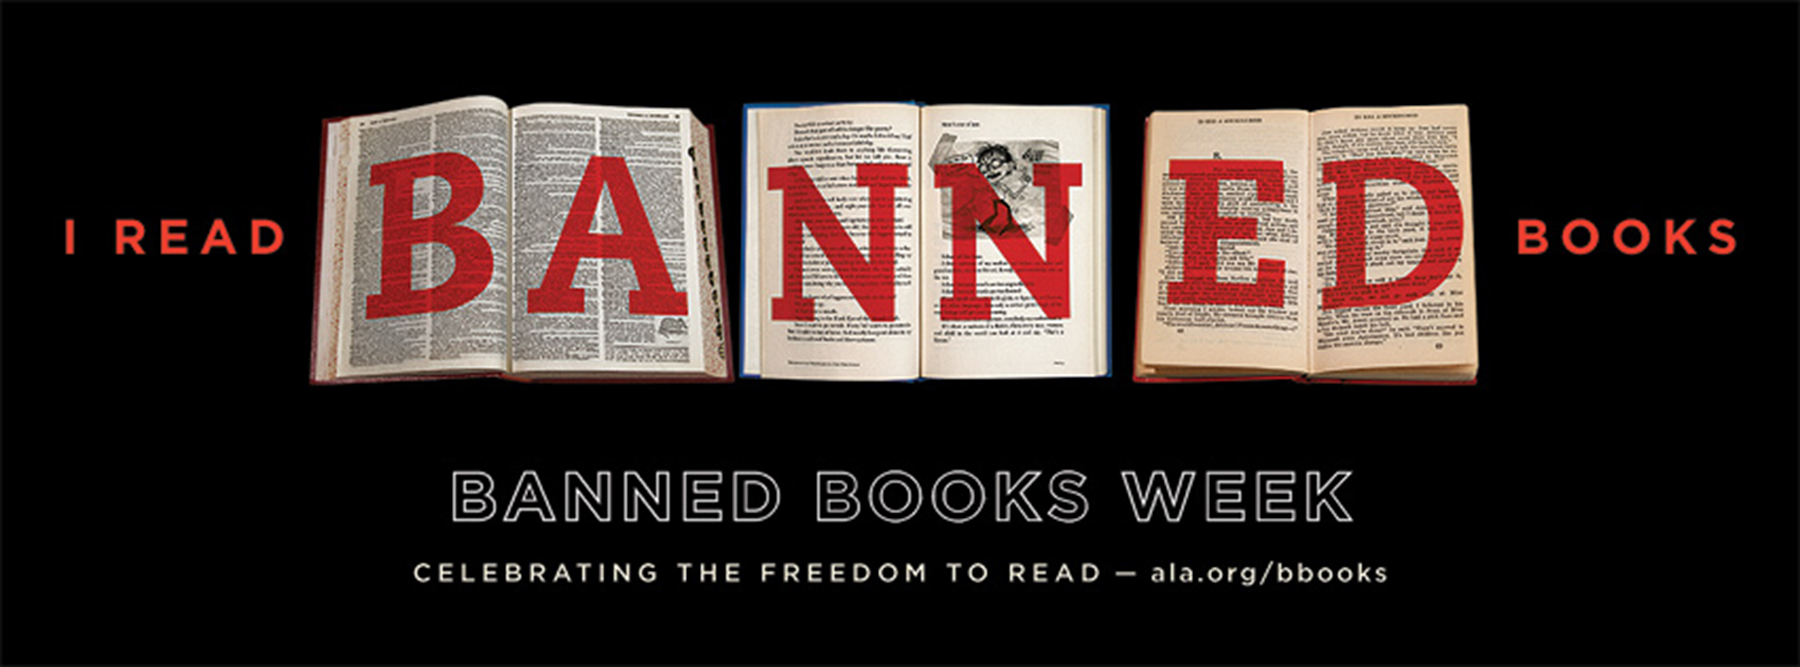 Banned Books Week Posters & Art (USA, 1982-present) • Ad/Lib